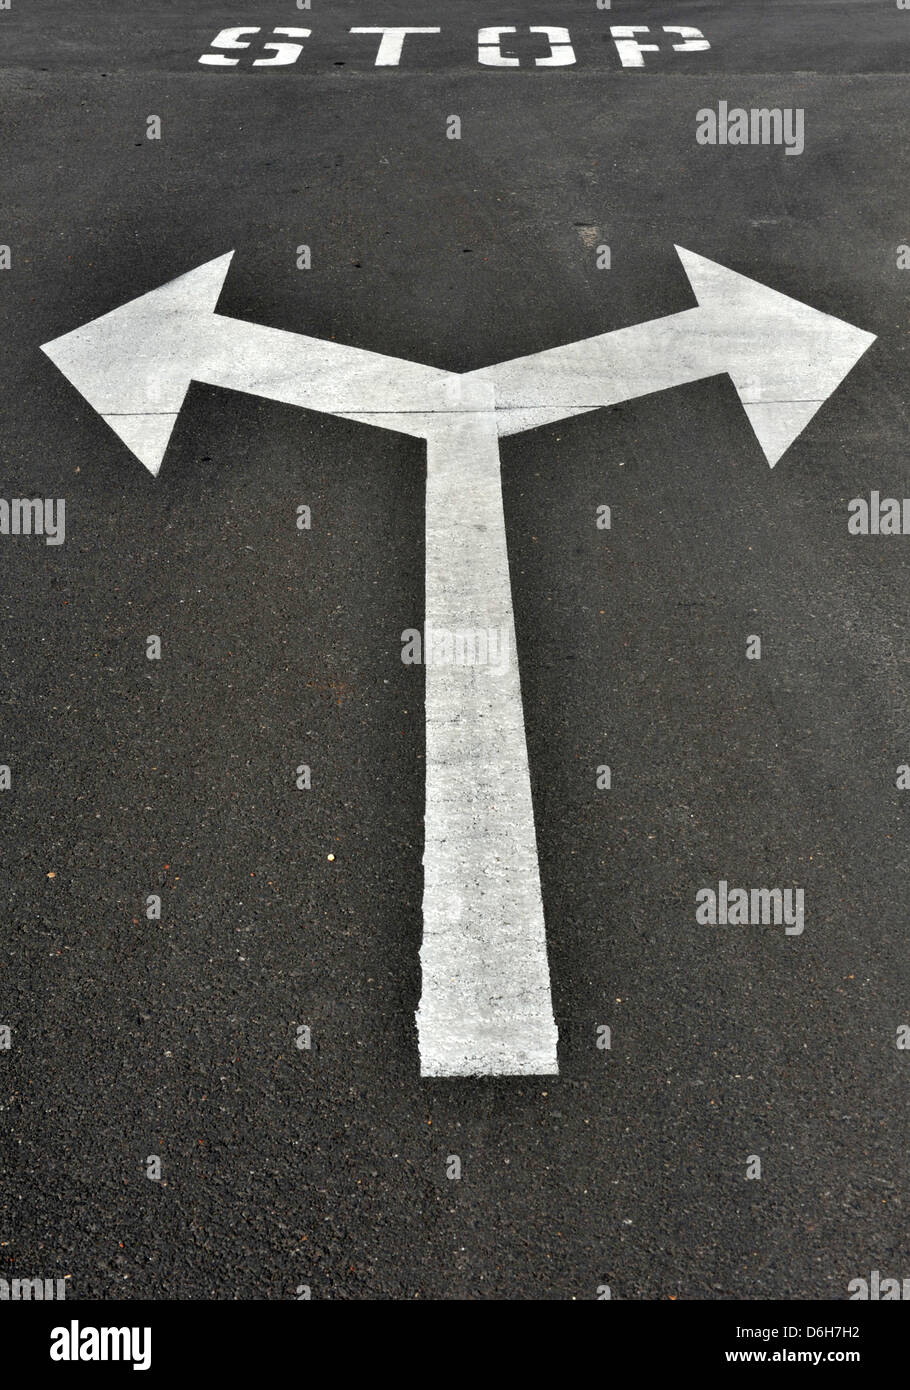 Stop T junction painted road markings, Lanzarote, Canary Islands Stock Photo